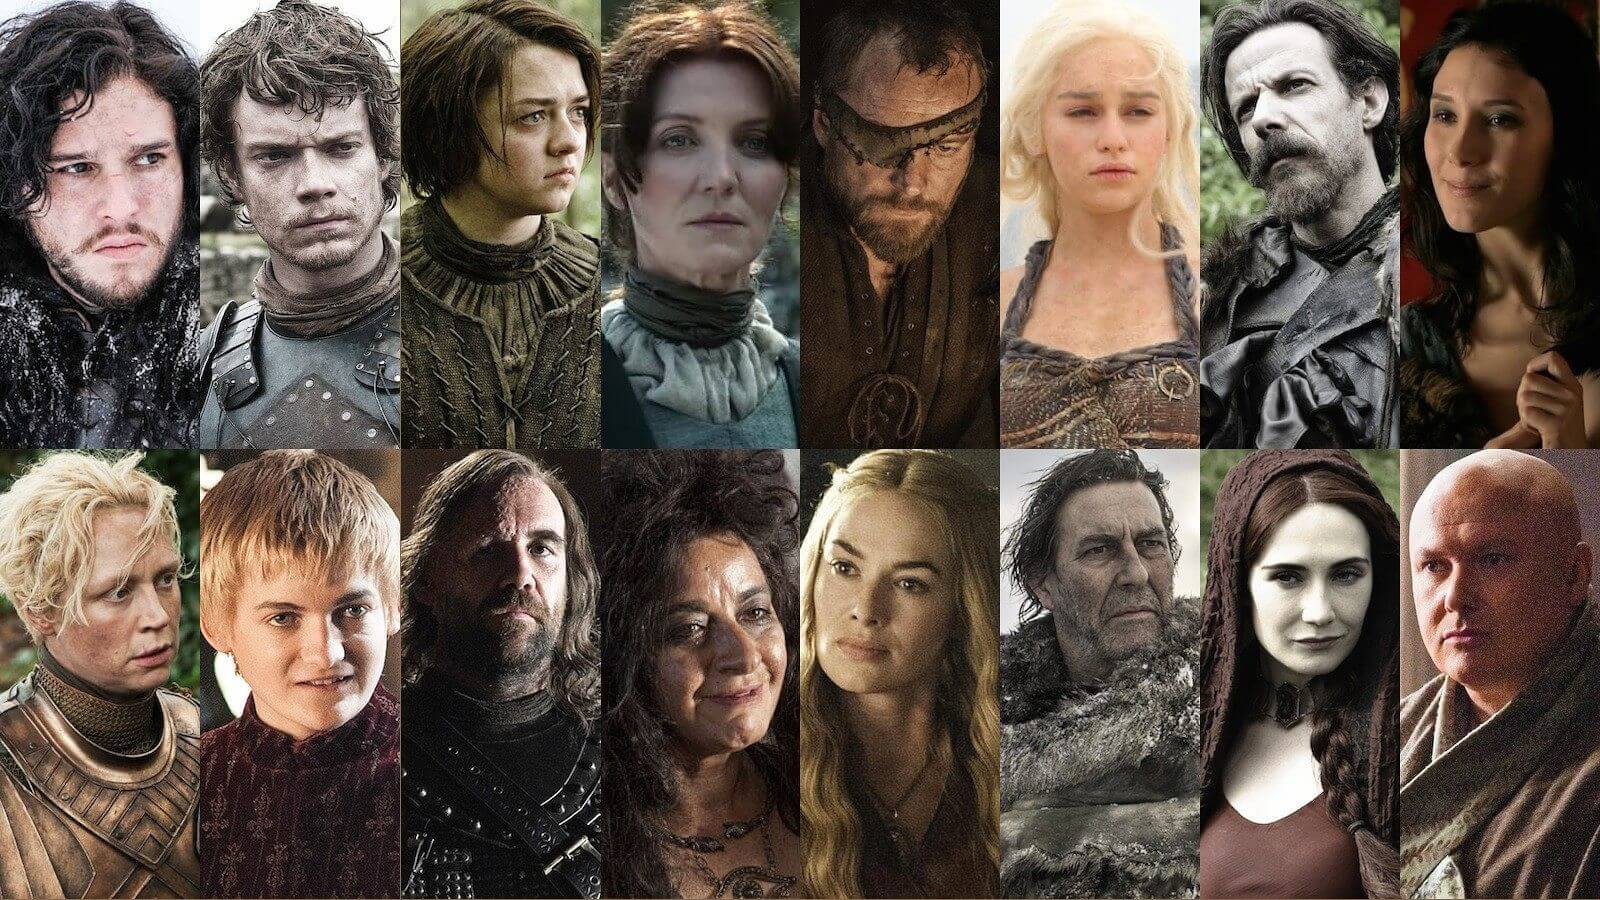 https://www.yumemono.net/wp-content/uploads/2016/06/game-of-thrones-cast.jpg